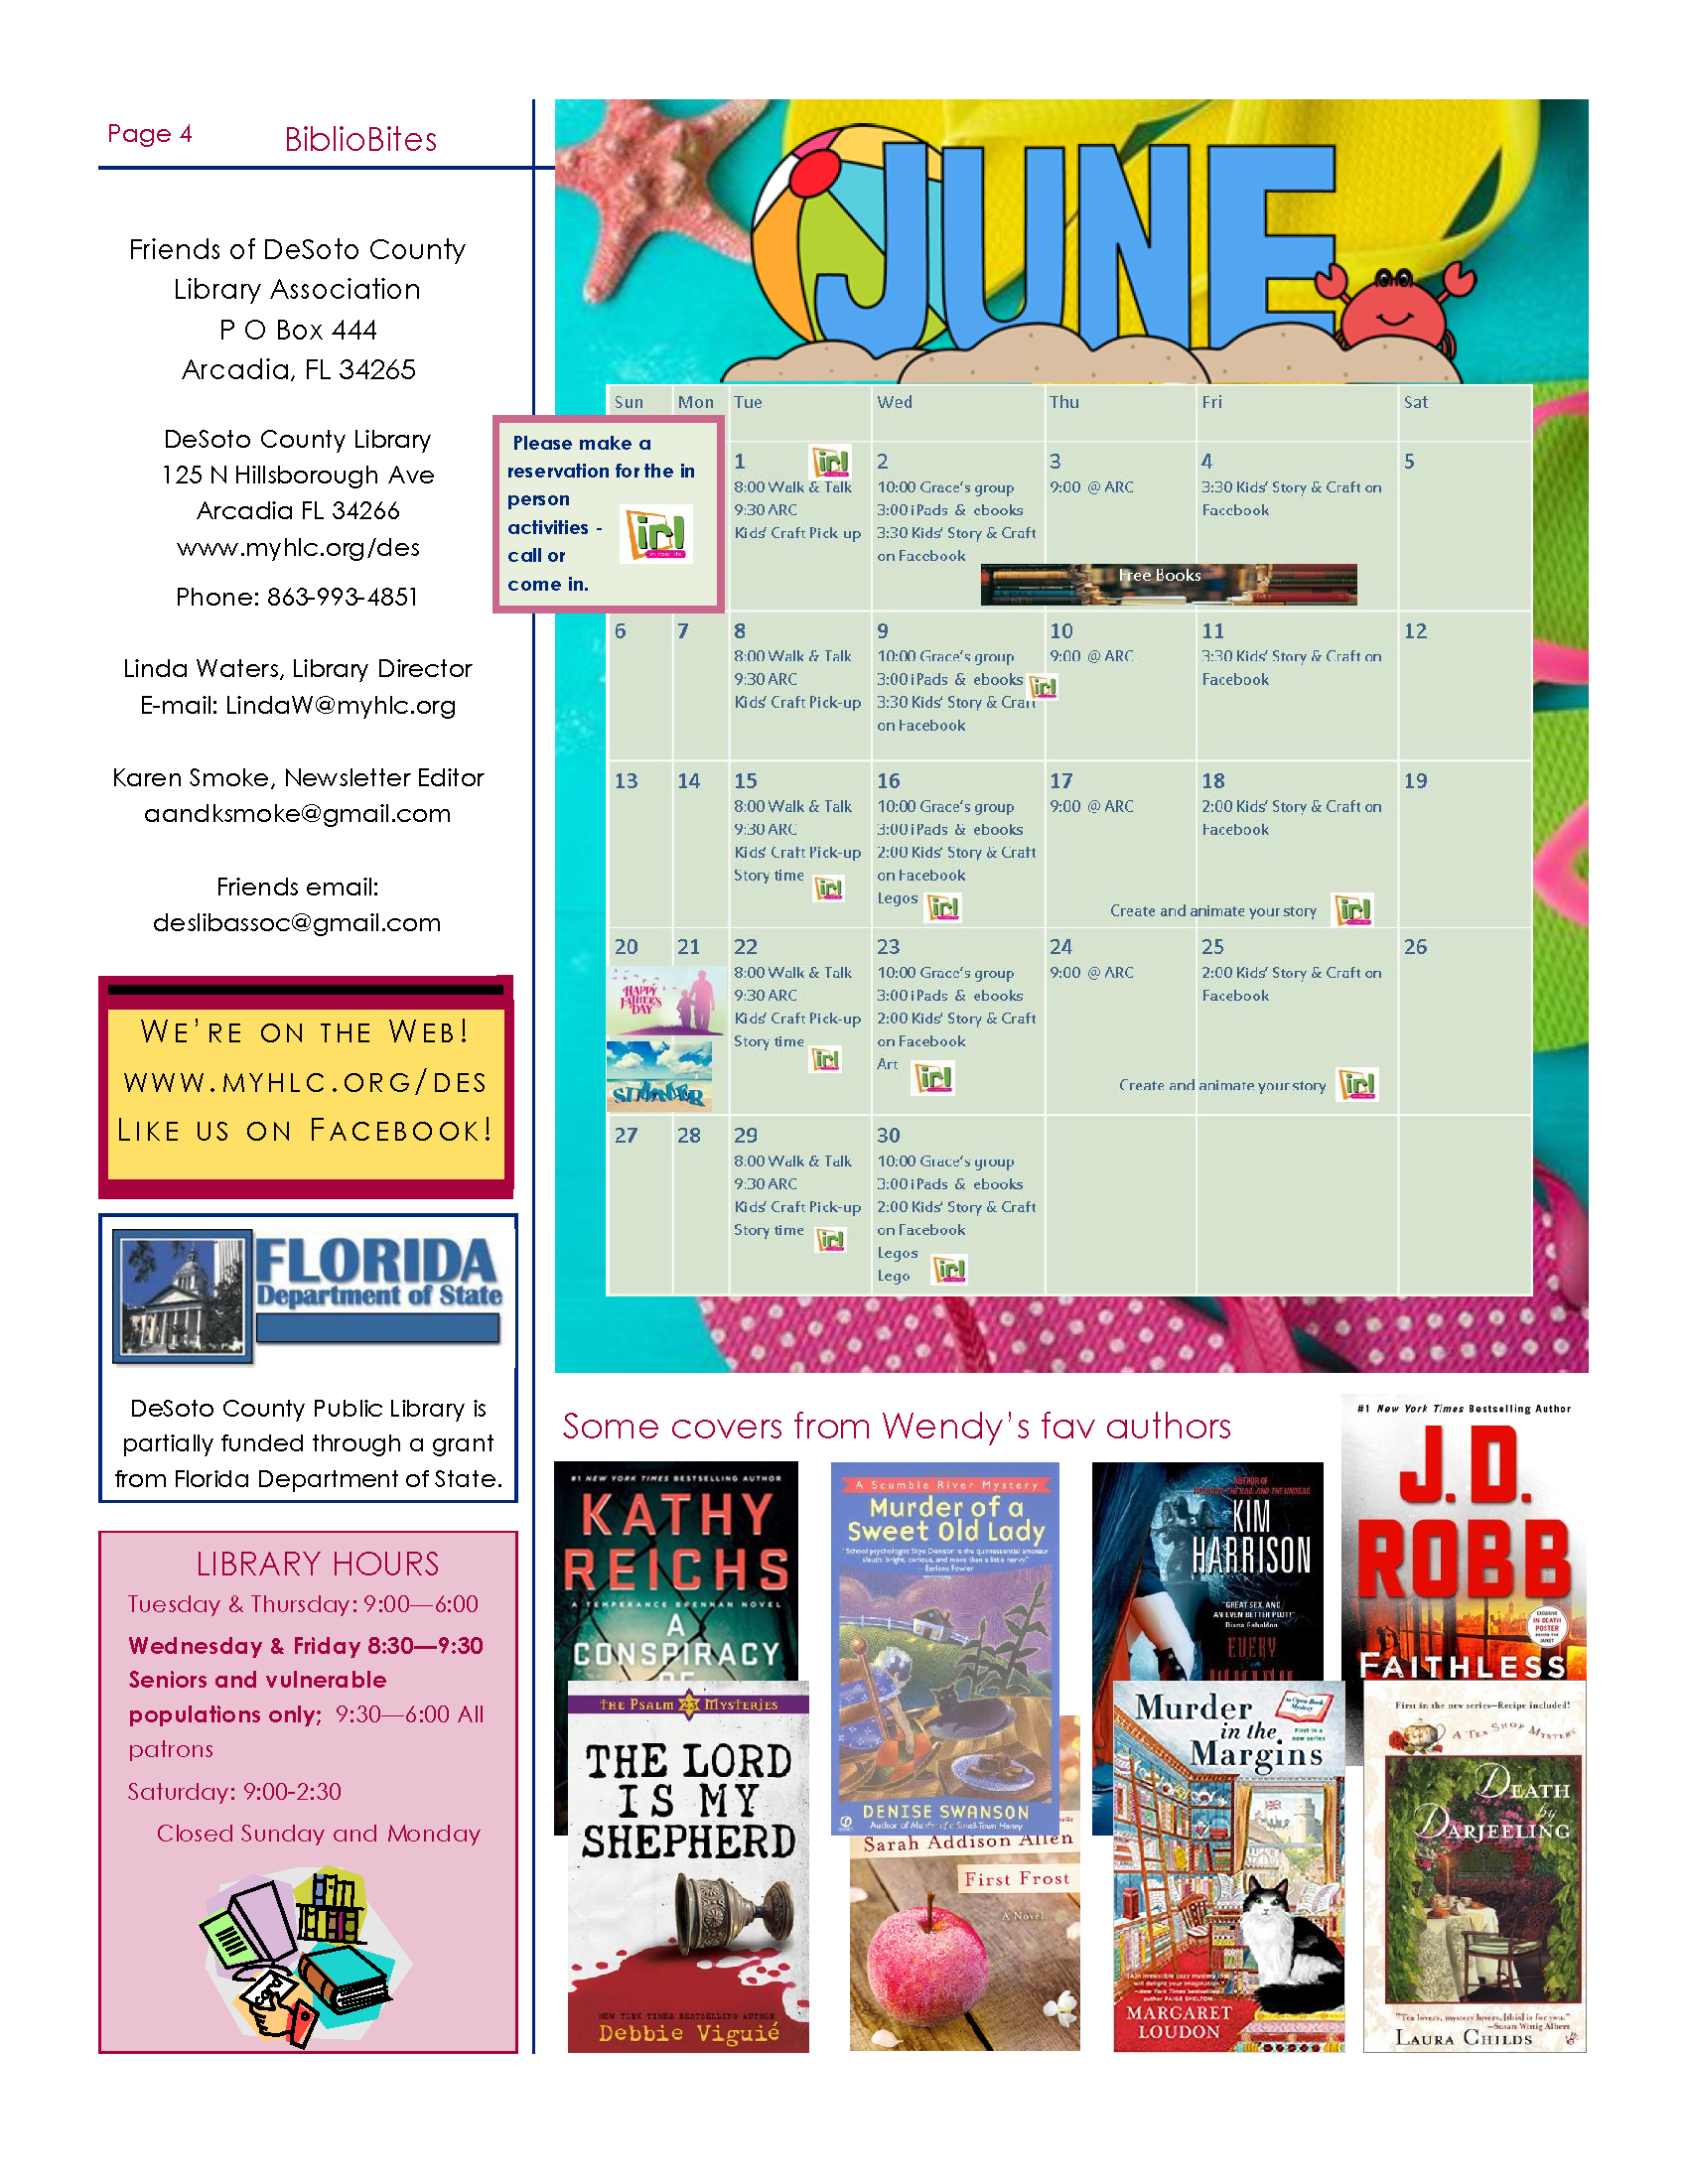 Page 4 of Newsletter